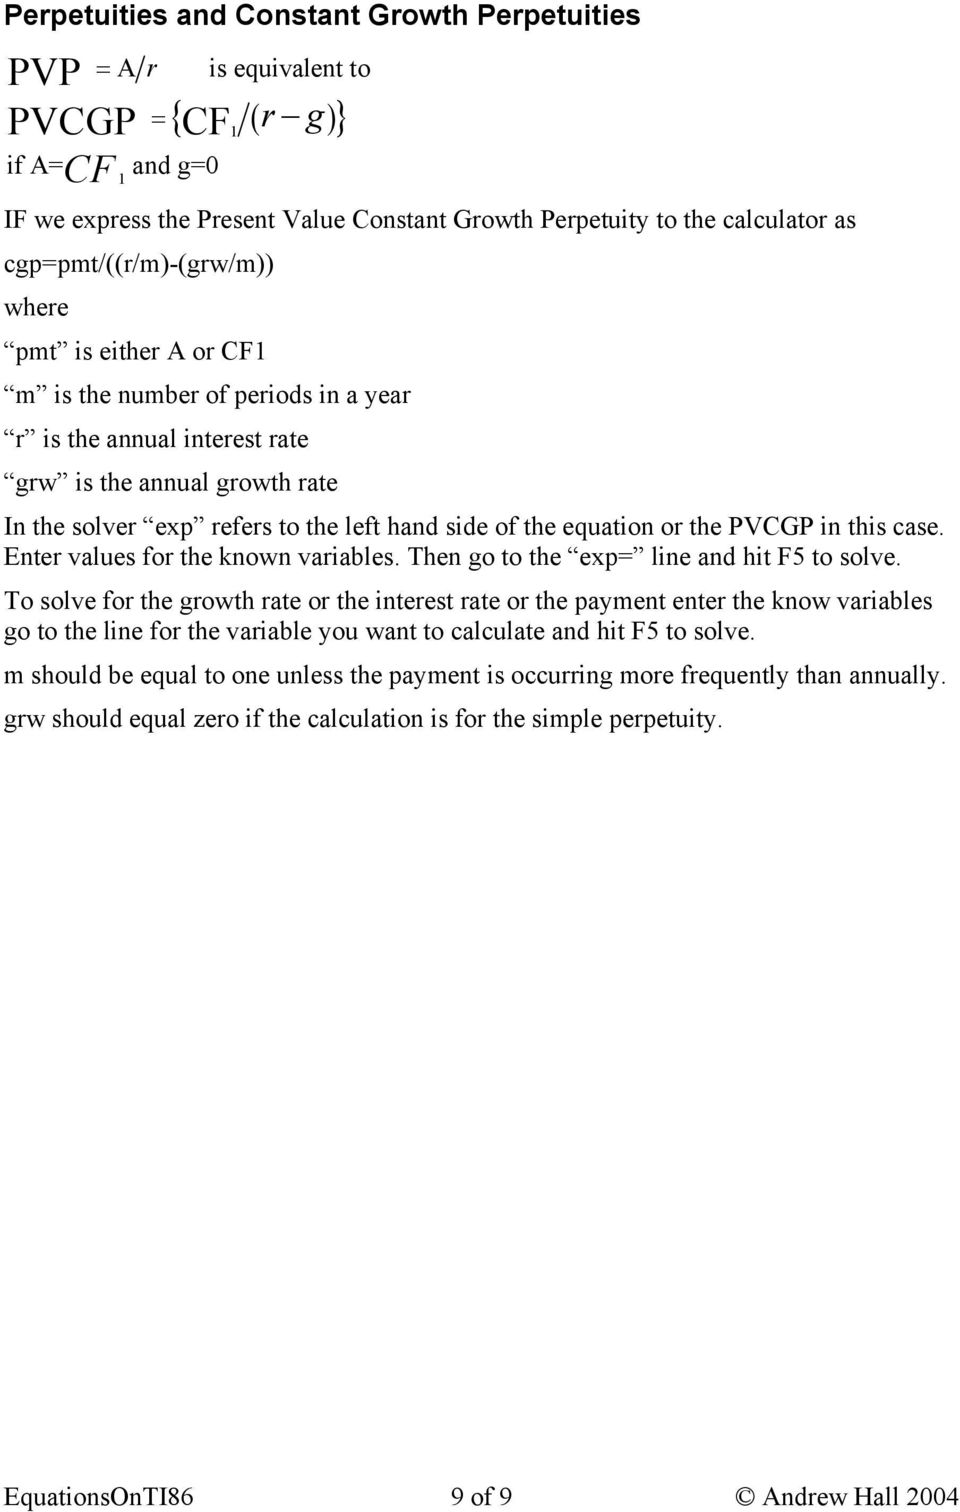 equatio or the PVCGP i this case. Eter values for the kow variables. The go to the exp= lie ad hit F5 to solve.